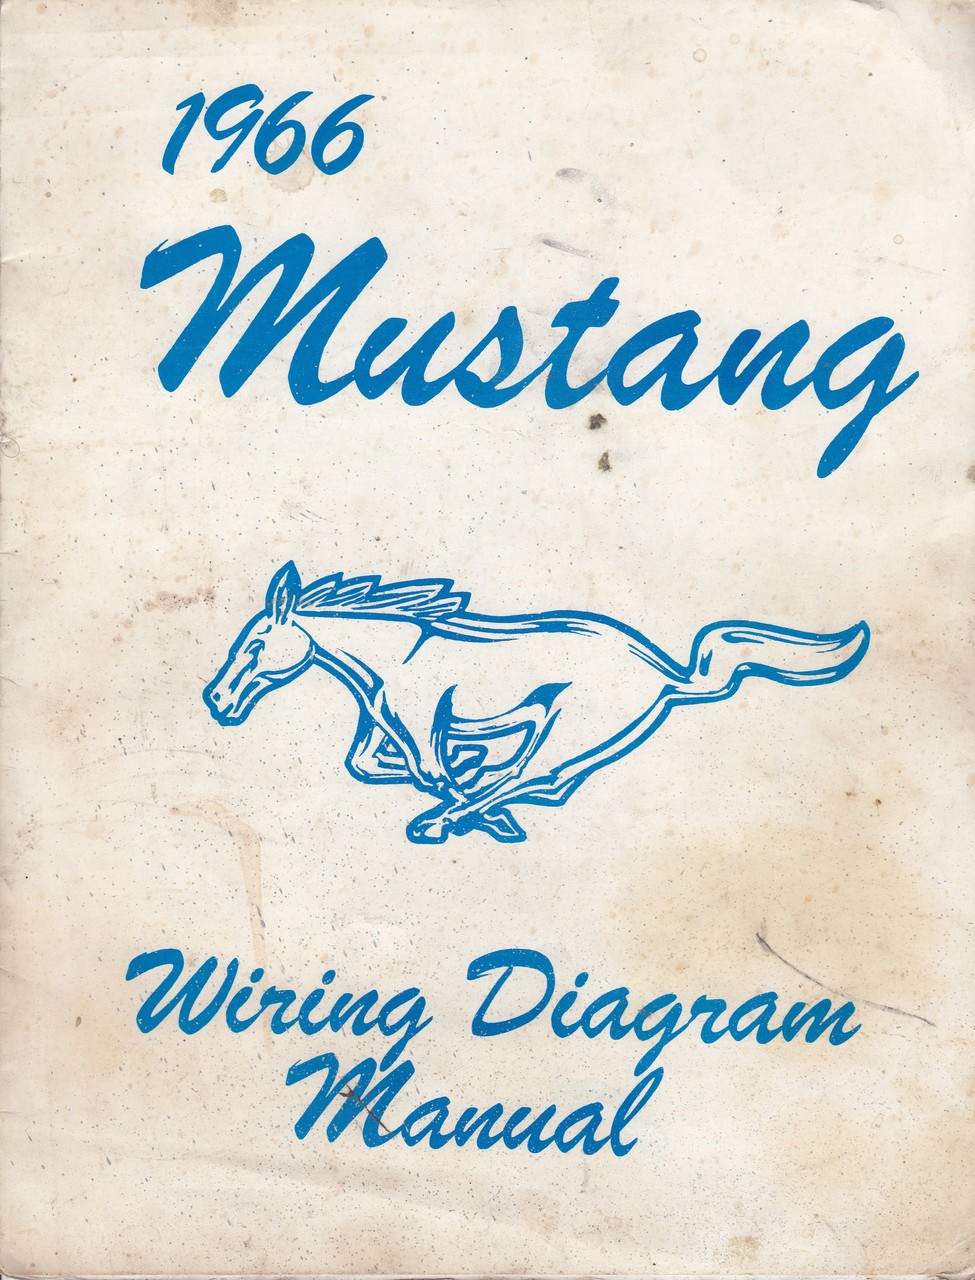 Super 1966 Ford Mustang Wiring Diagram Manual Wiring Cloud Hisonuggs Outletorg